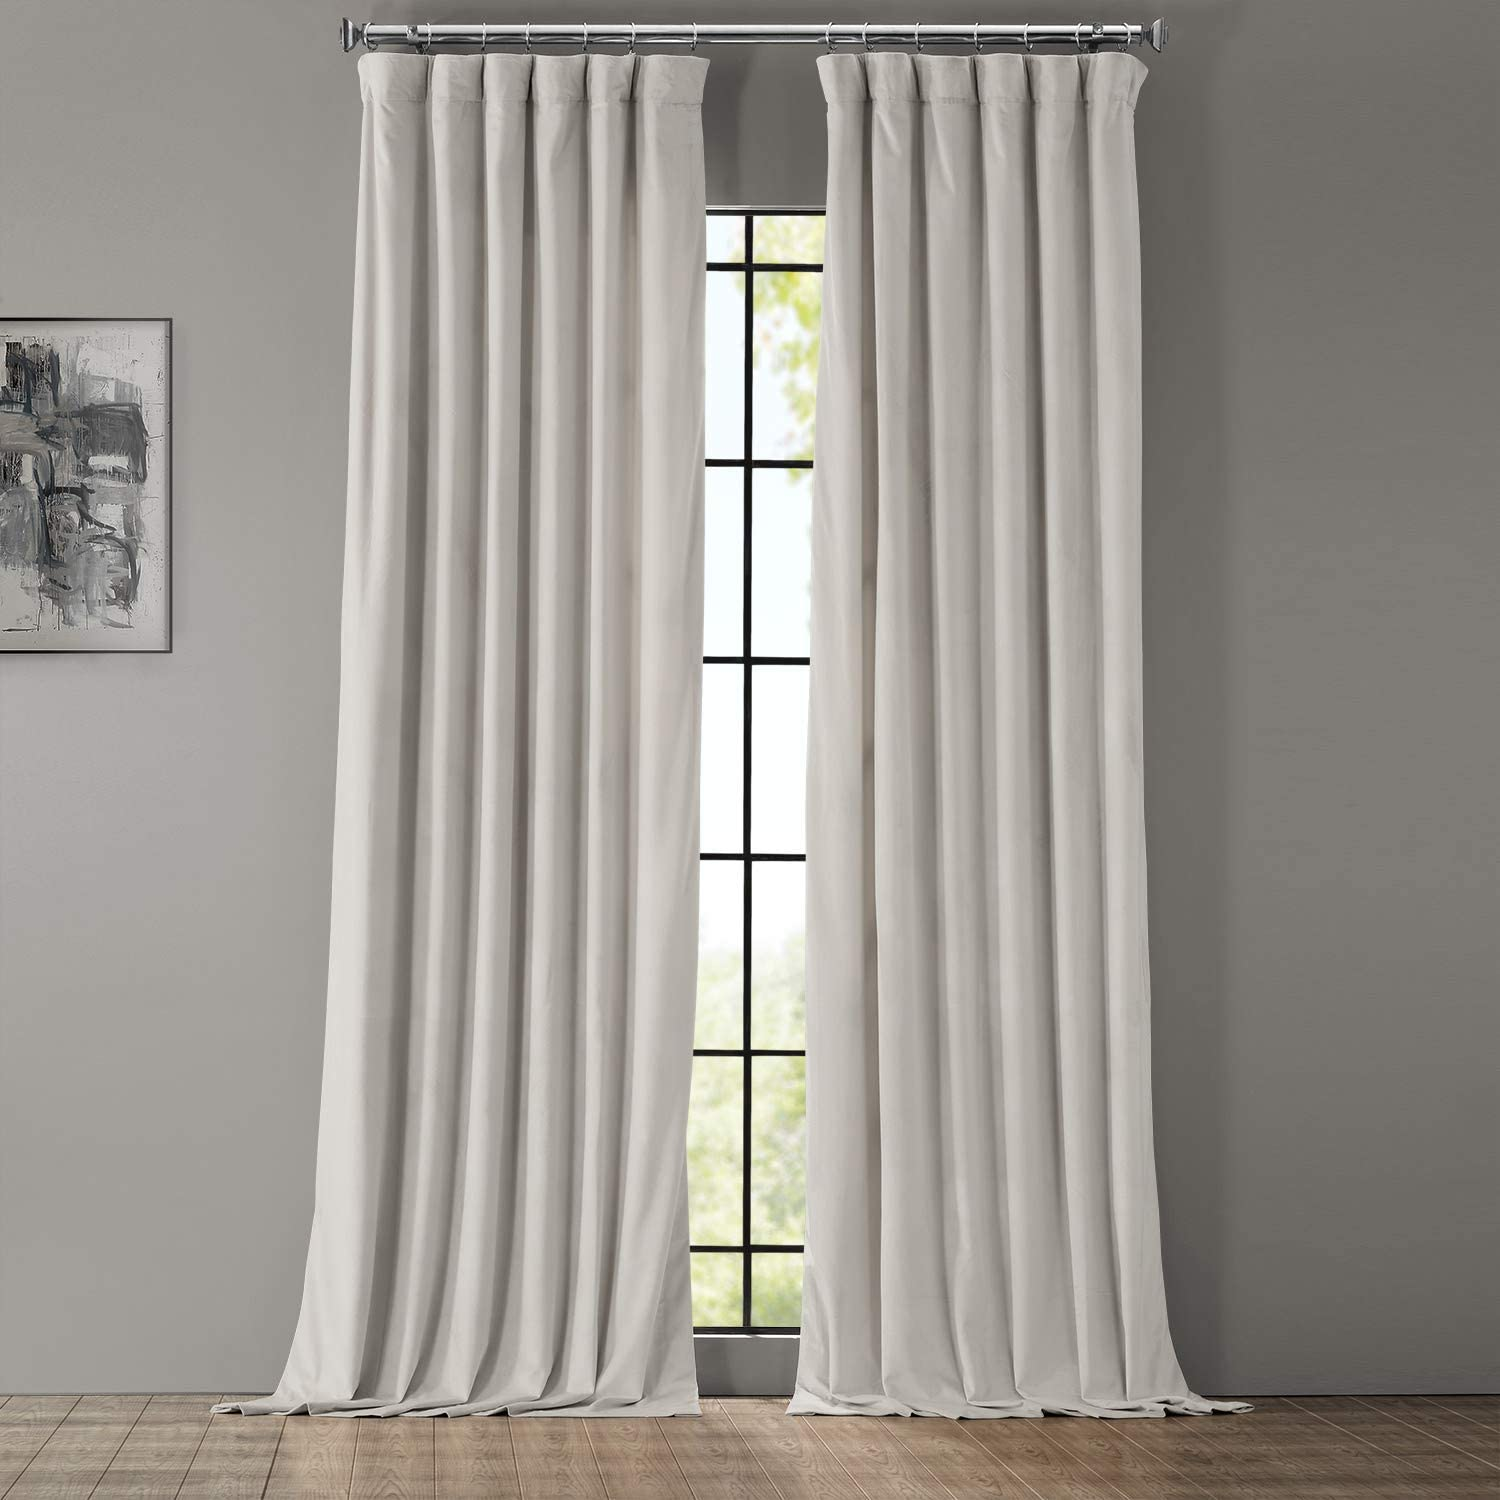 HPD Half Price Drapes VPYC-161204-108 Heritage Plush Velvet Curtain (1 Panel), 50 X 108, Light Beige